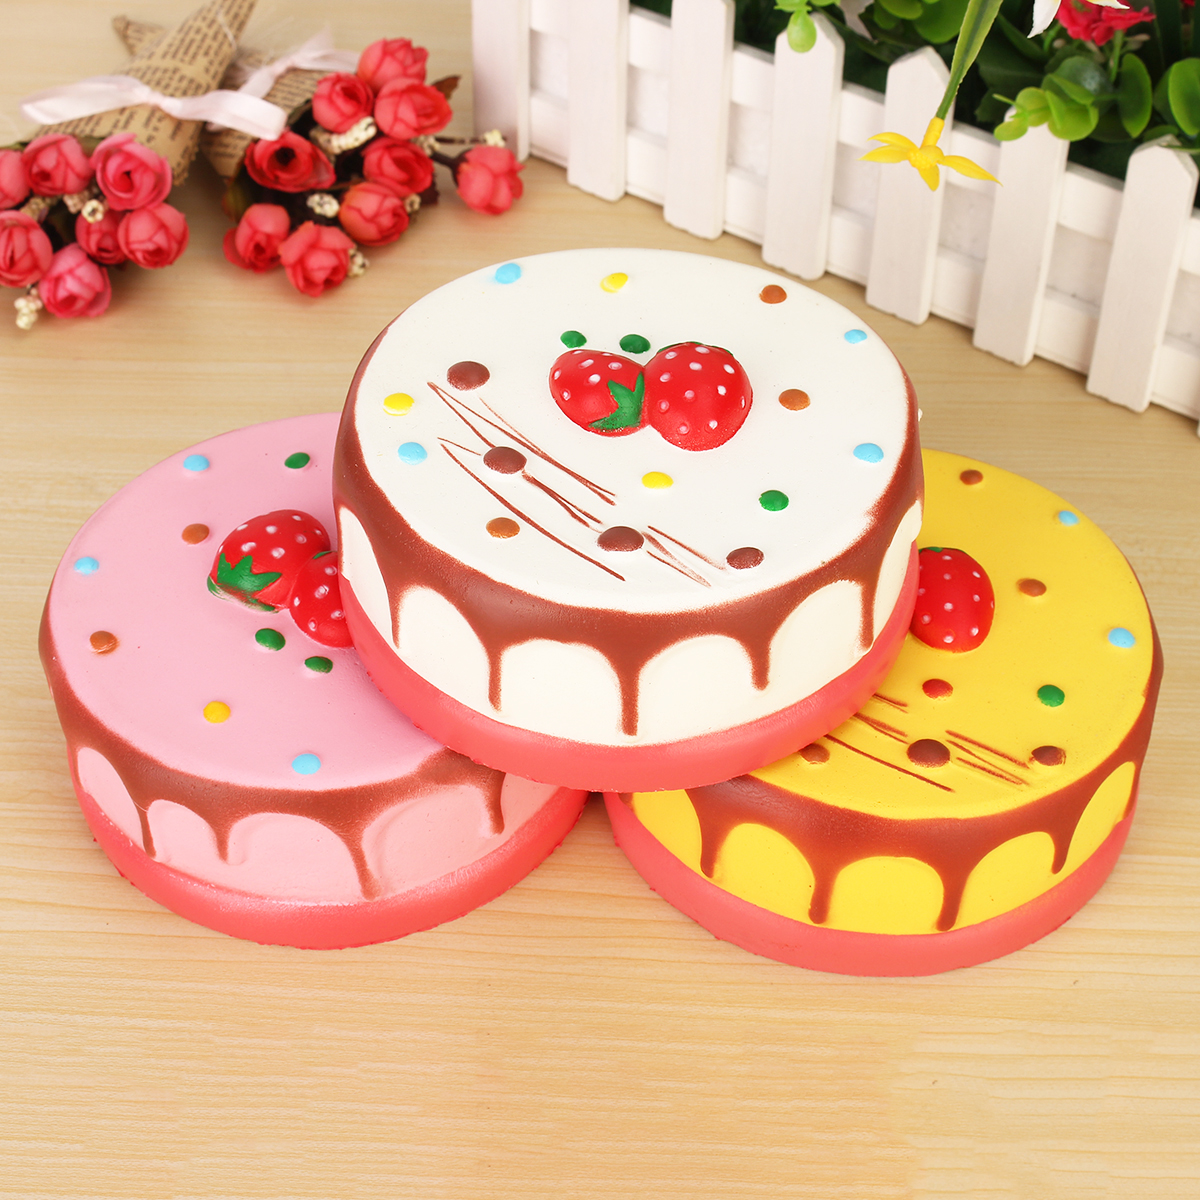 Squishy Cake Toy Target : 13CM Scented Cream Strawberry Cake Squishy Super Slow Rising Soft Press Exquisite Toy for ...